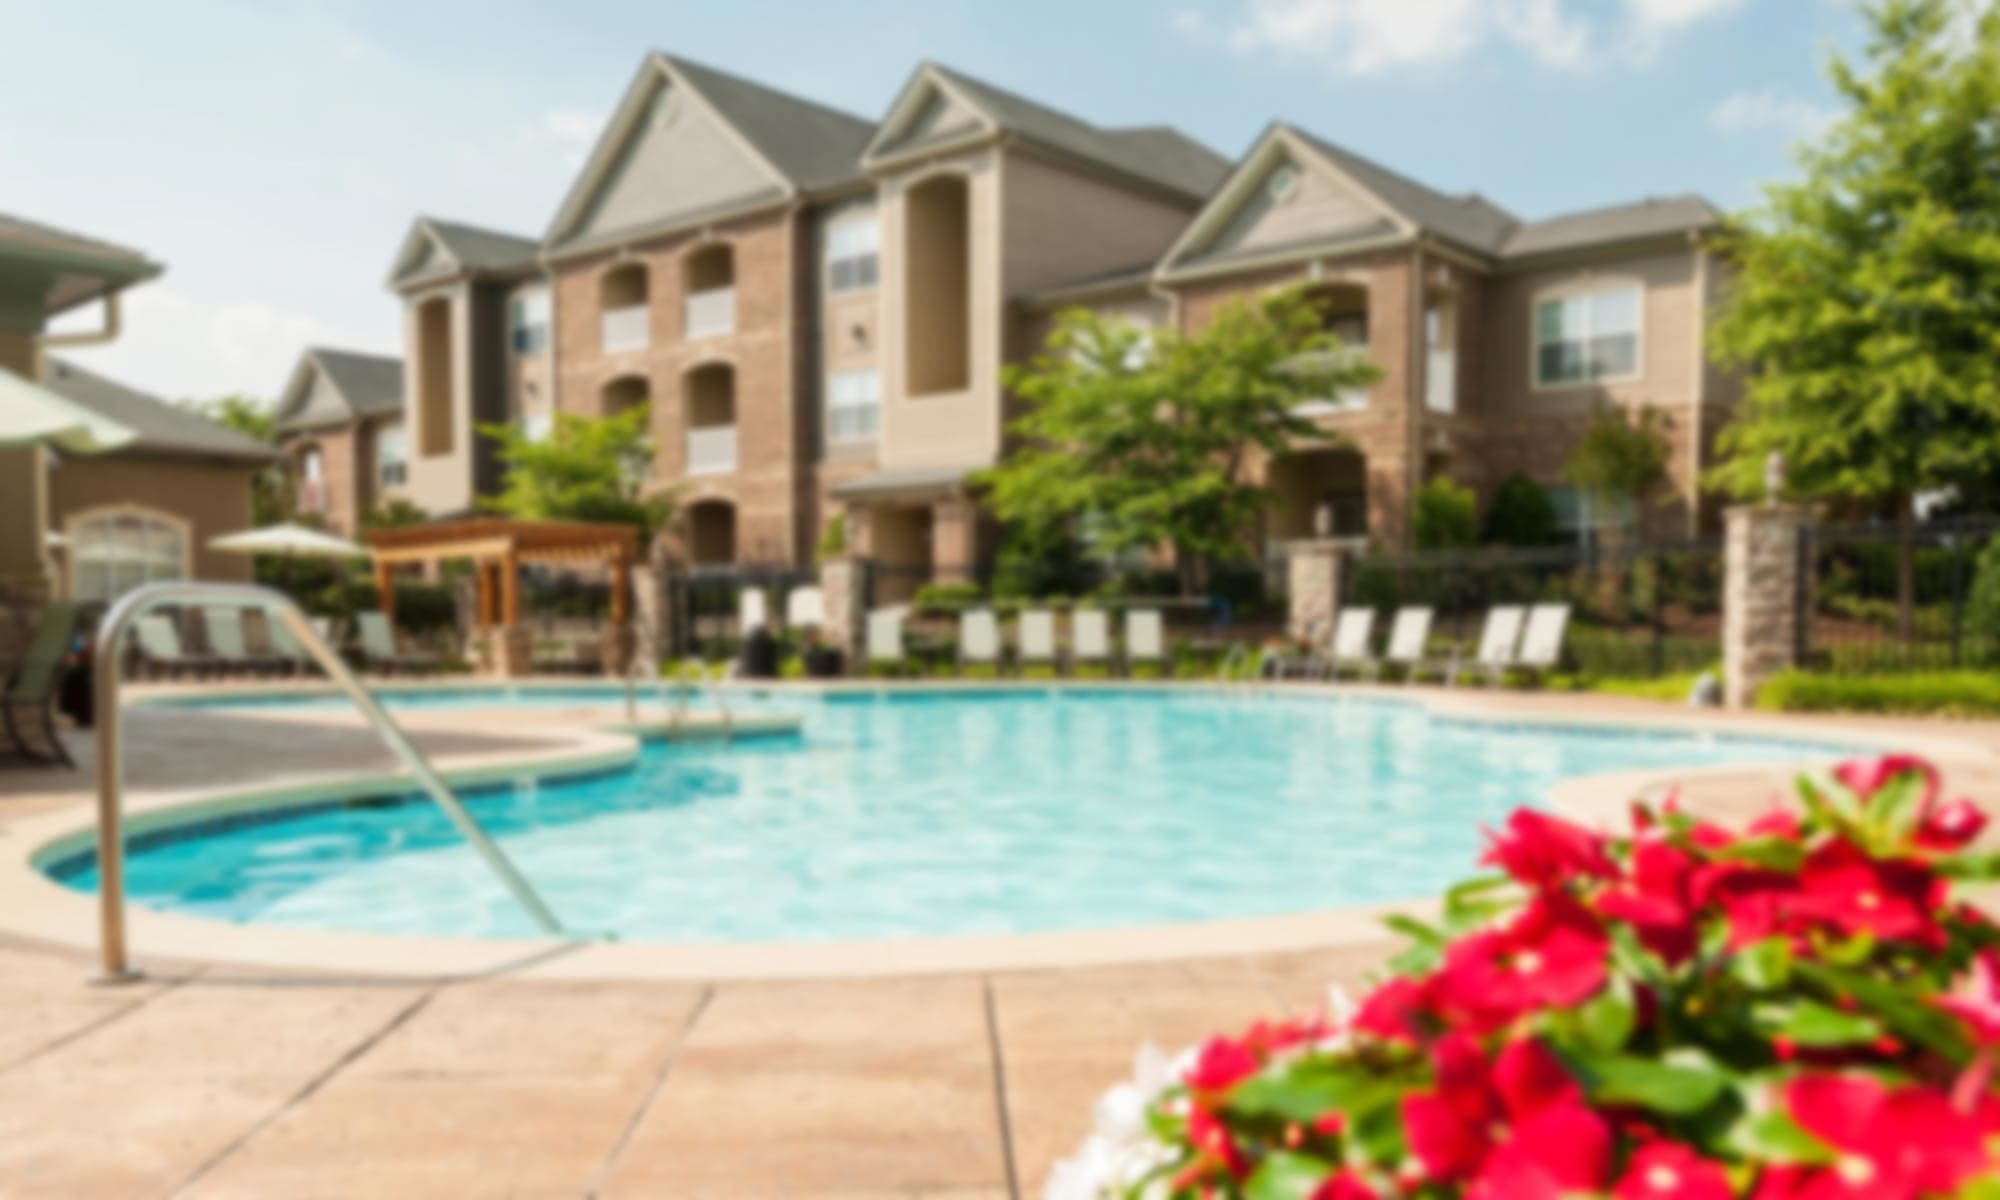 Apartments in Morrisville, NC